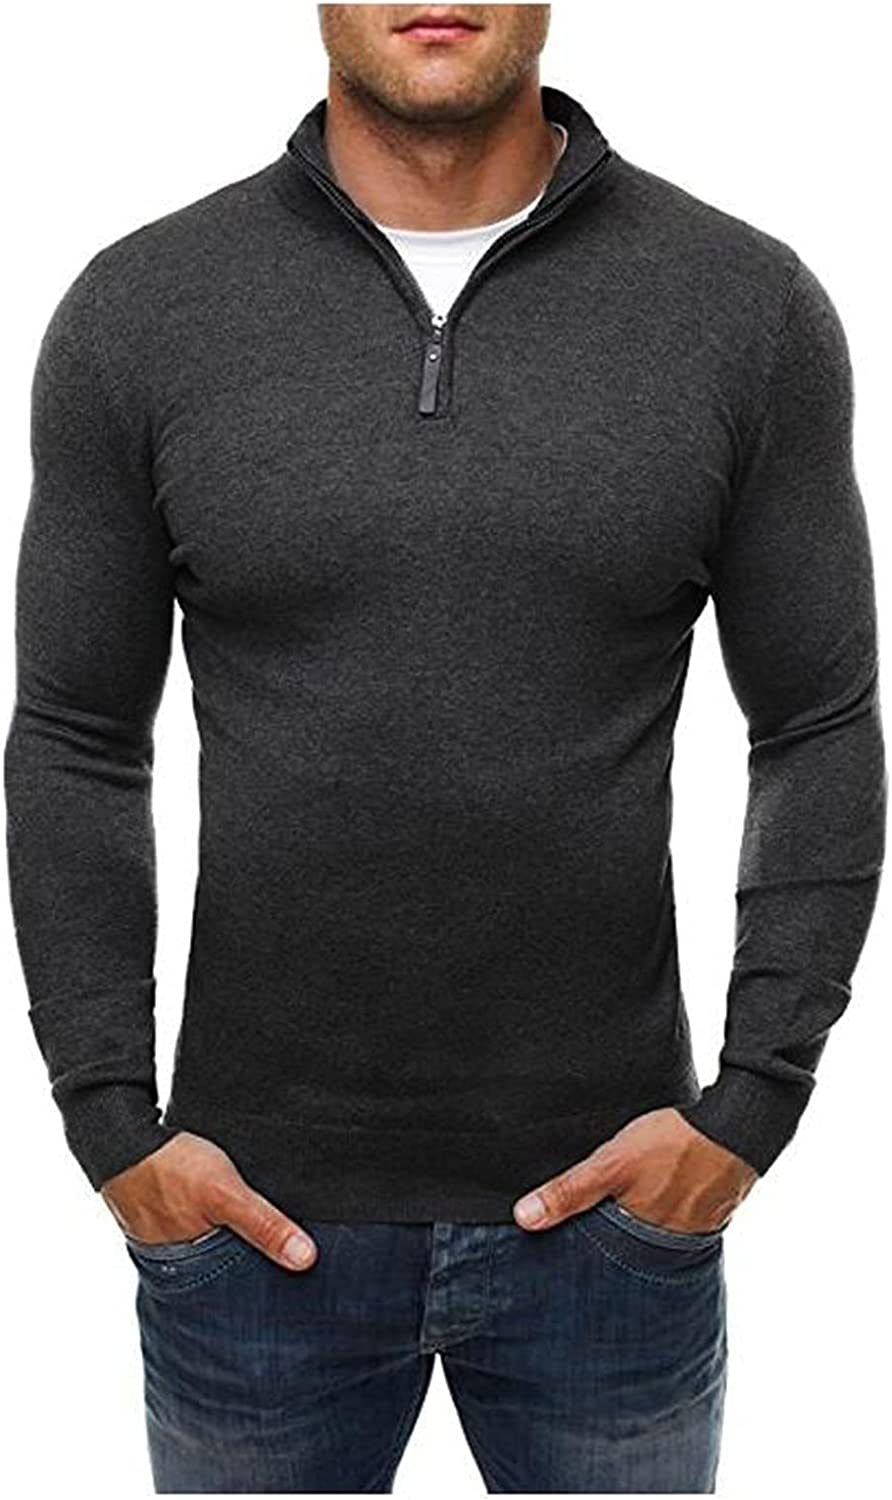 Men's Casual Warm Sweater,Winter 1/4 Zip Turtleneck Knitted,Work Tops Long Sleeve Ribbed Pullover Sweaters